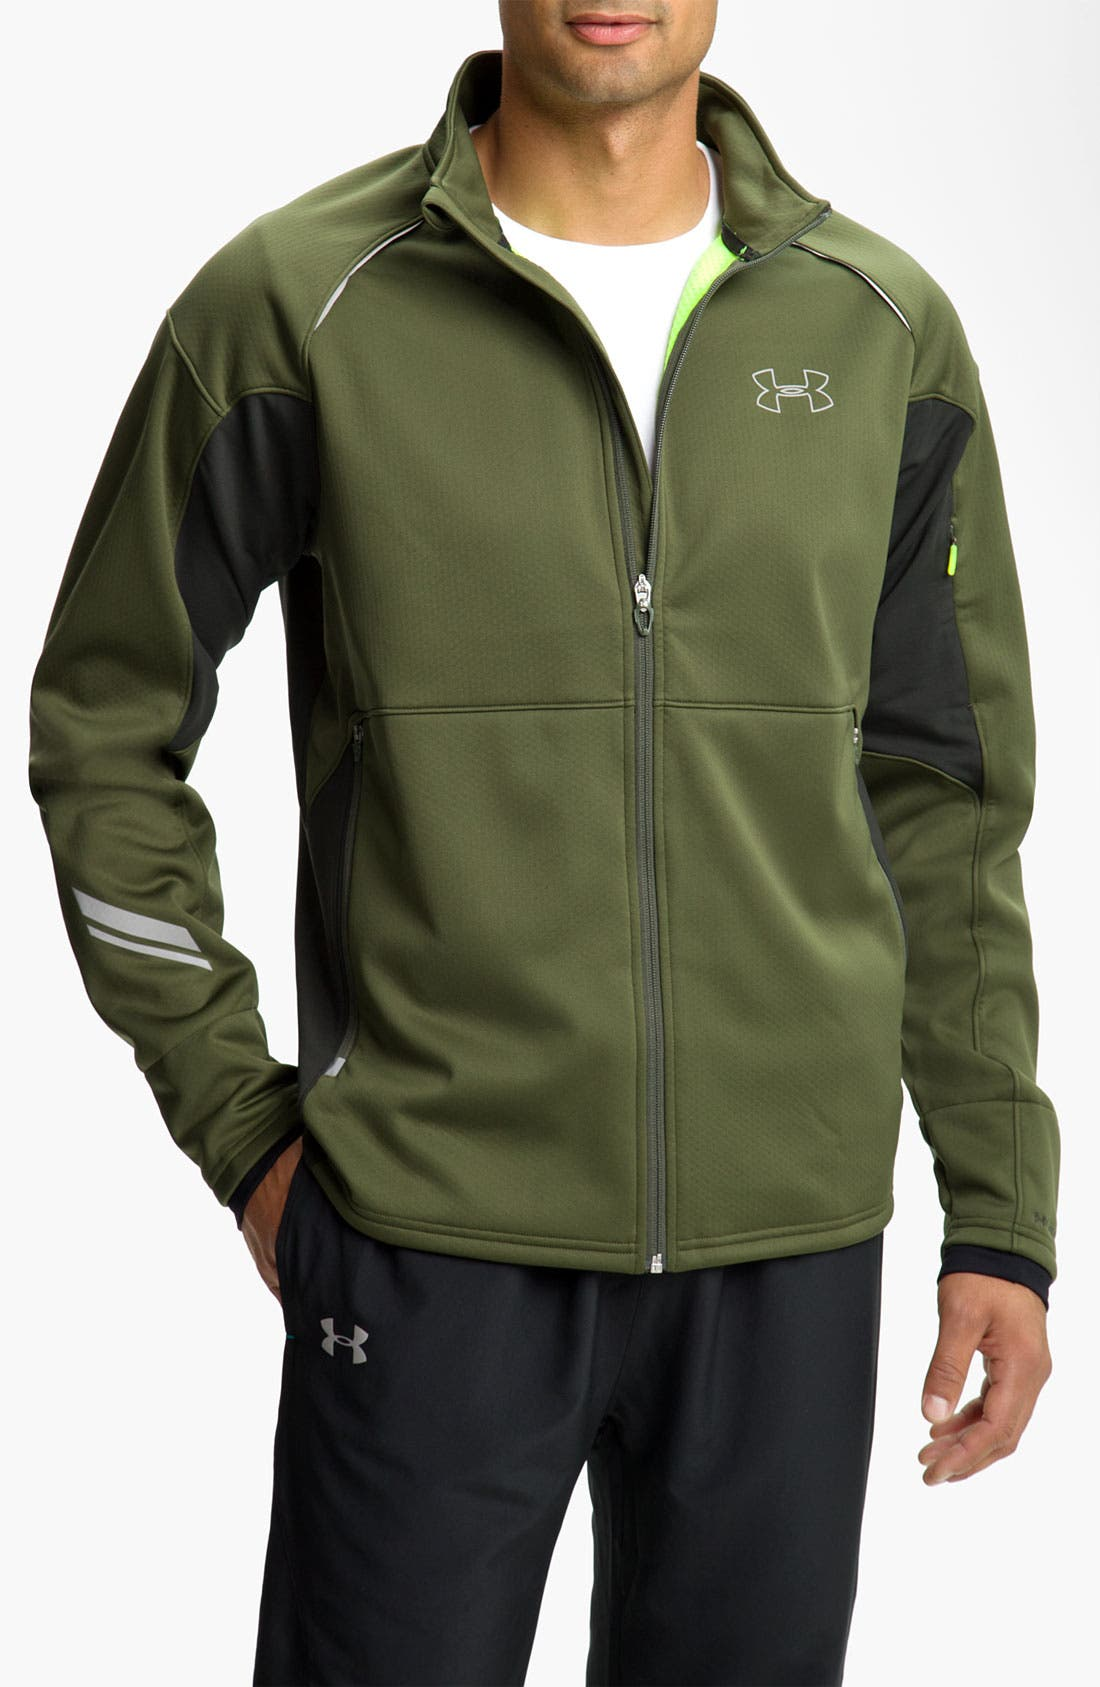 Alternate Image 1 Selected - Under Armour 'Storm Run' Regular Fit Track Jacket